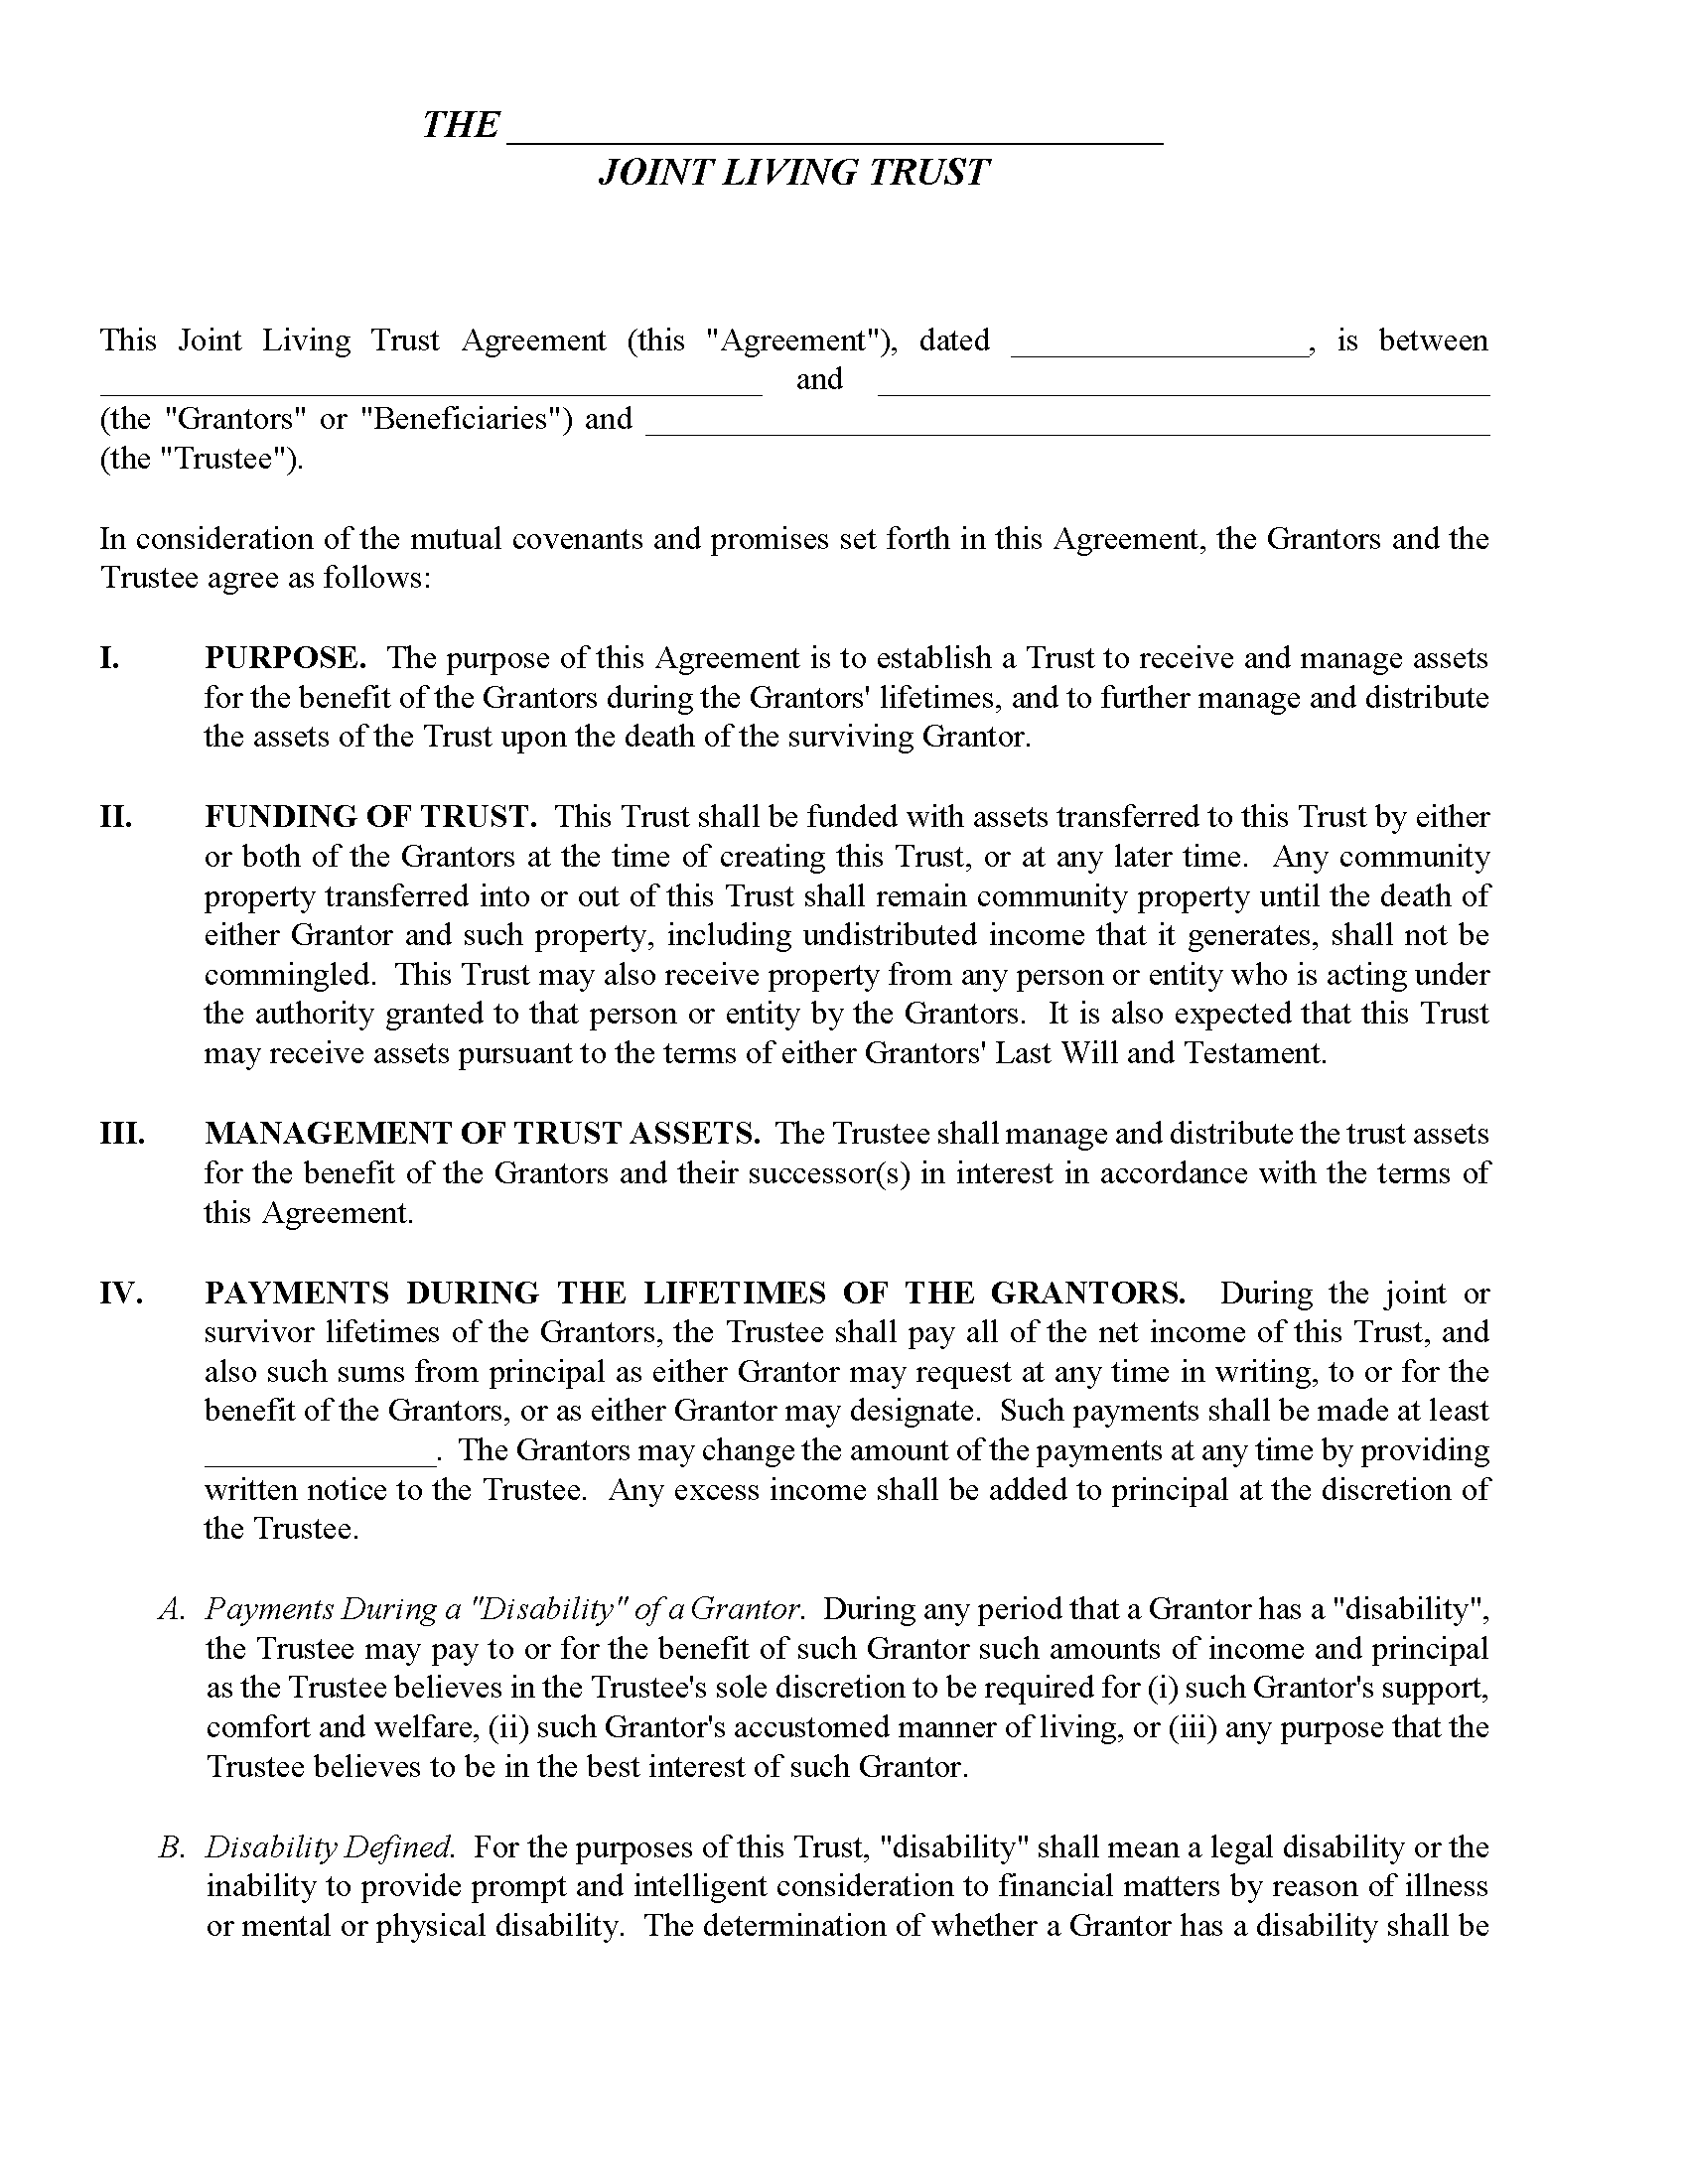 New Hampshire Joint Living Trust Form